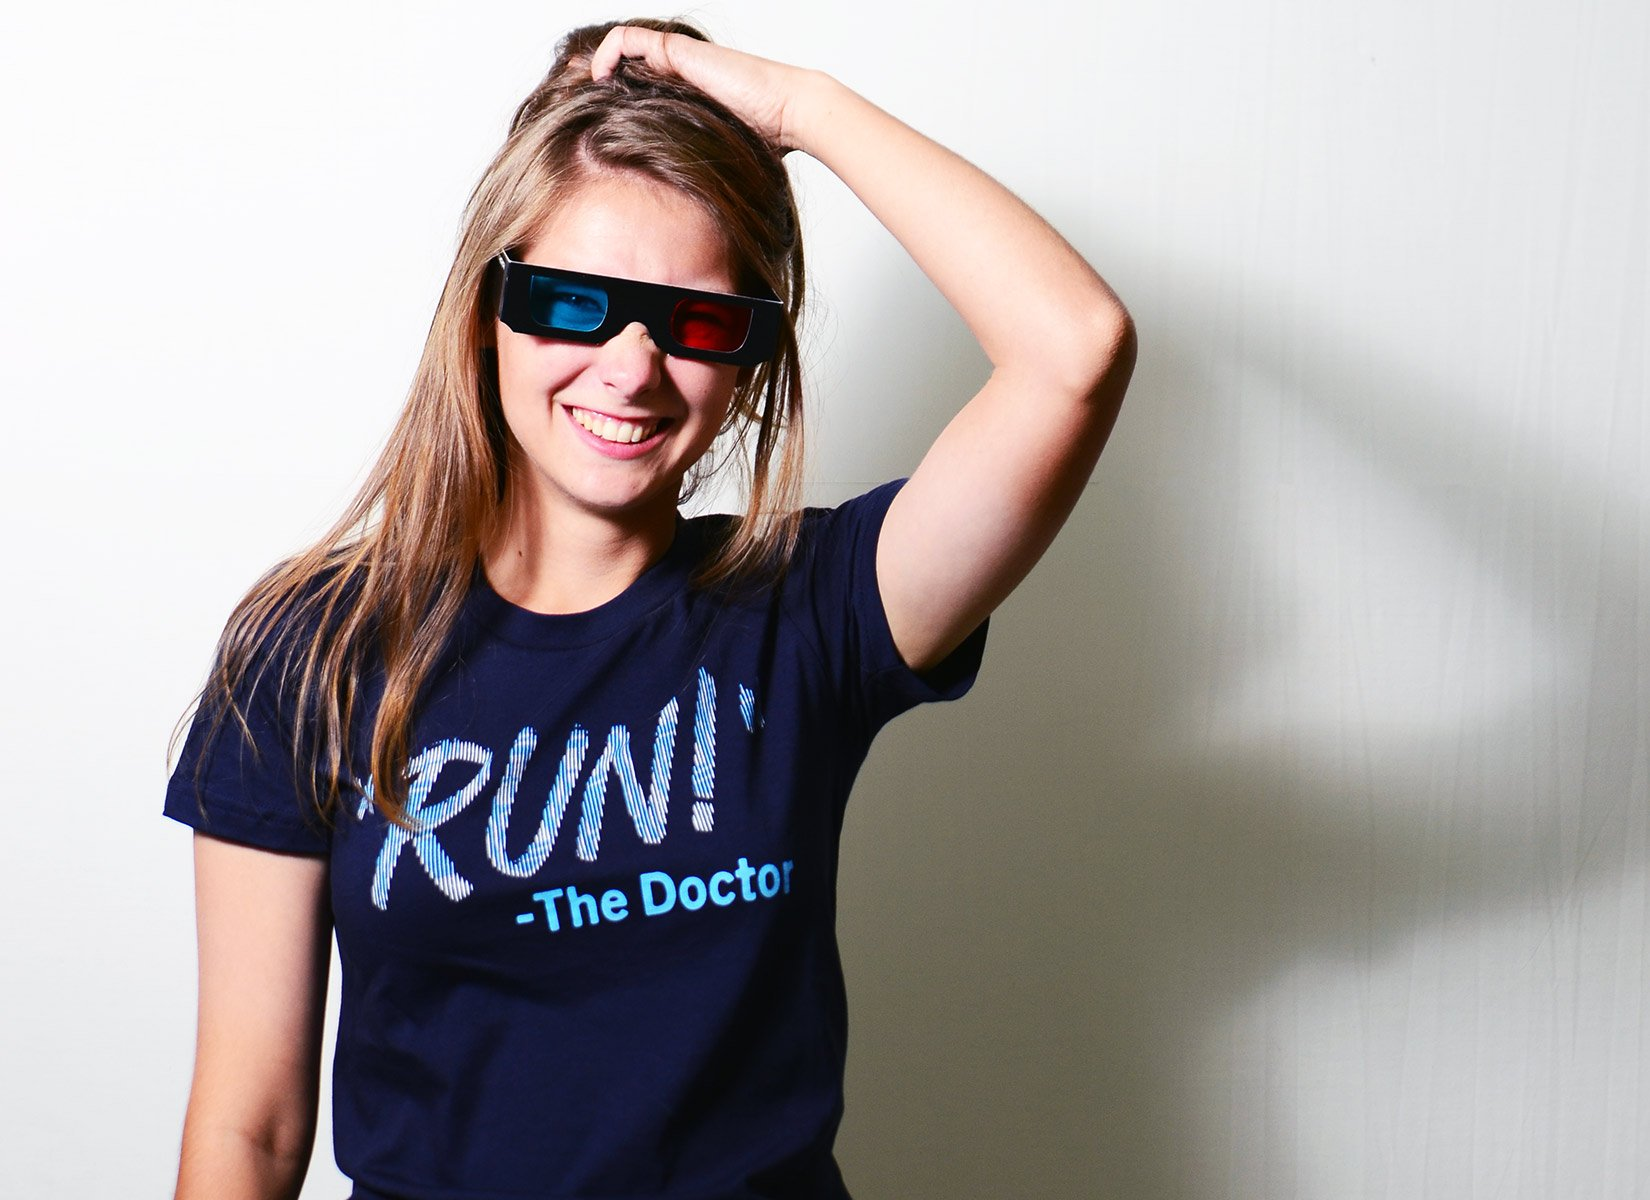 RUN! The Doctor on Juniors T-Shirt